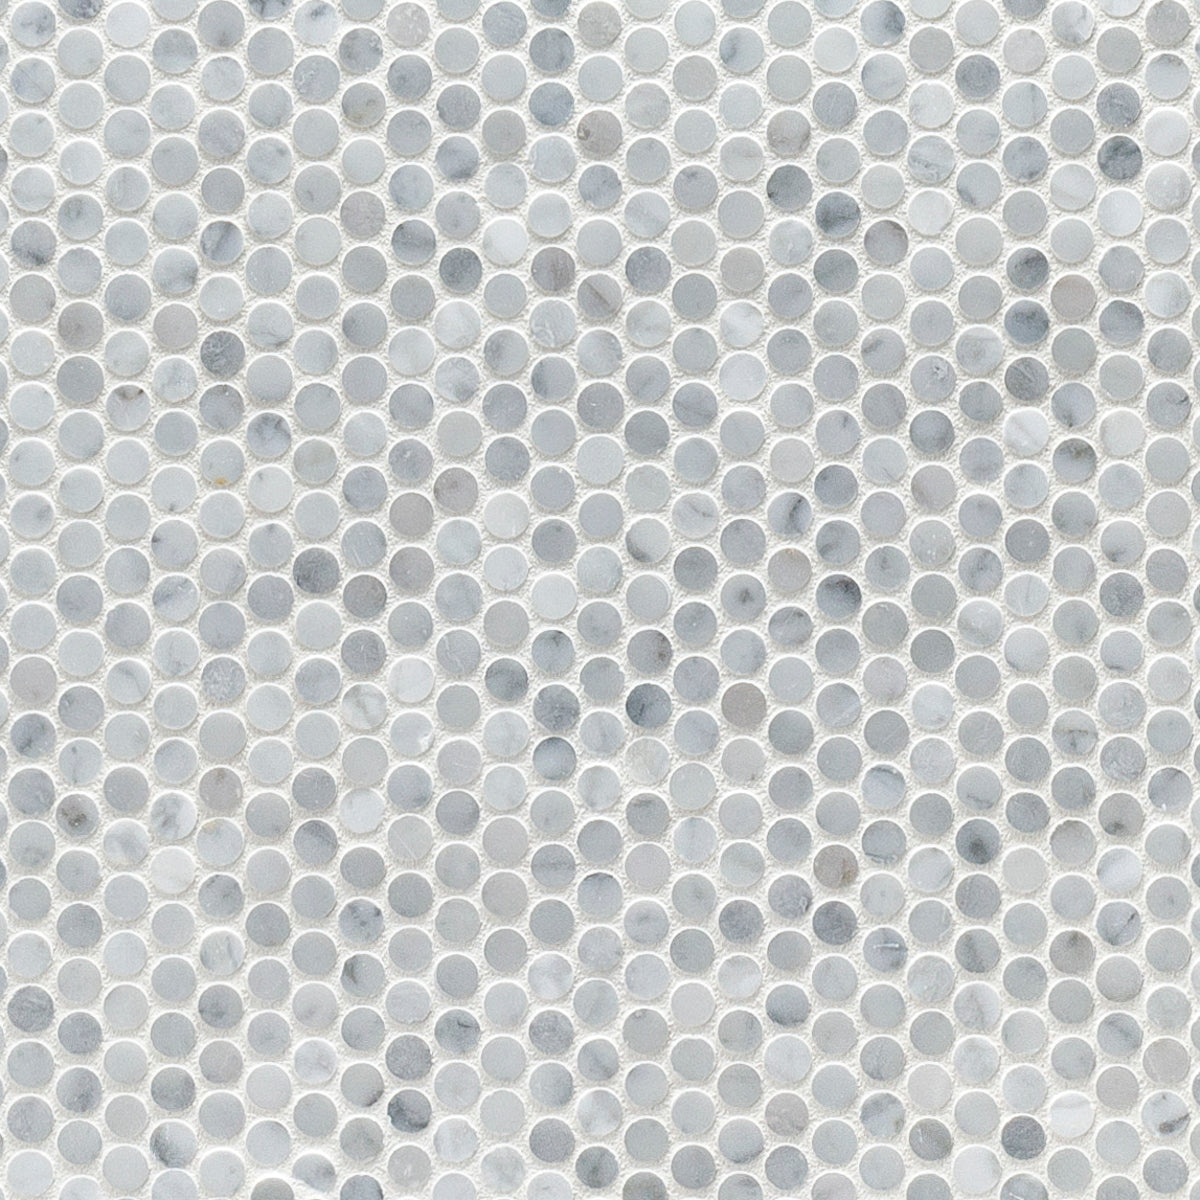 Studs Bianco Carrara Marble Swatch Card  Polished Samples Studs product photo